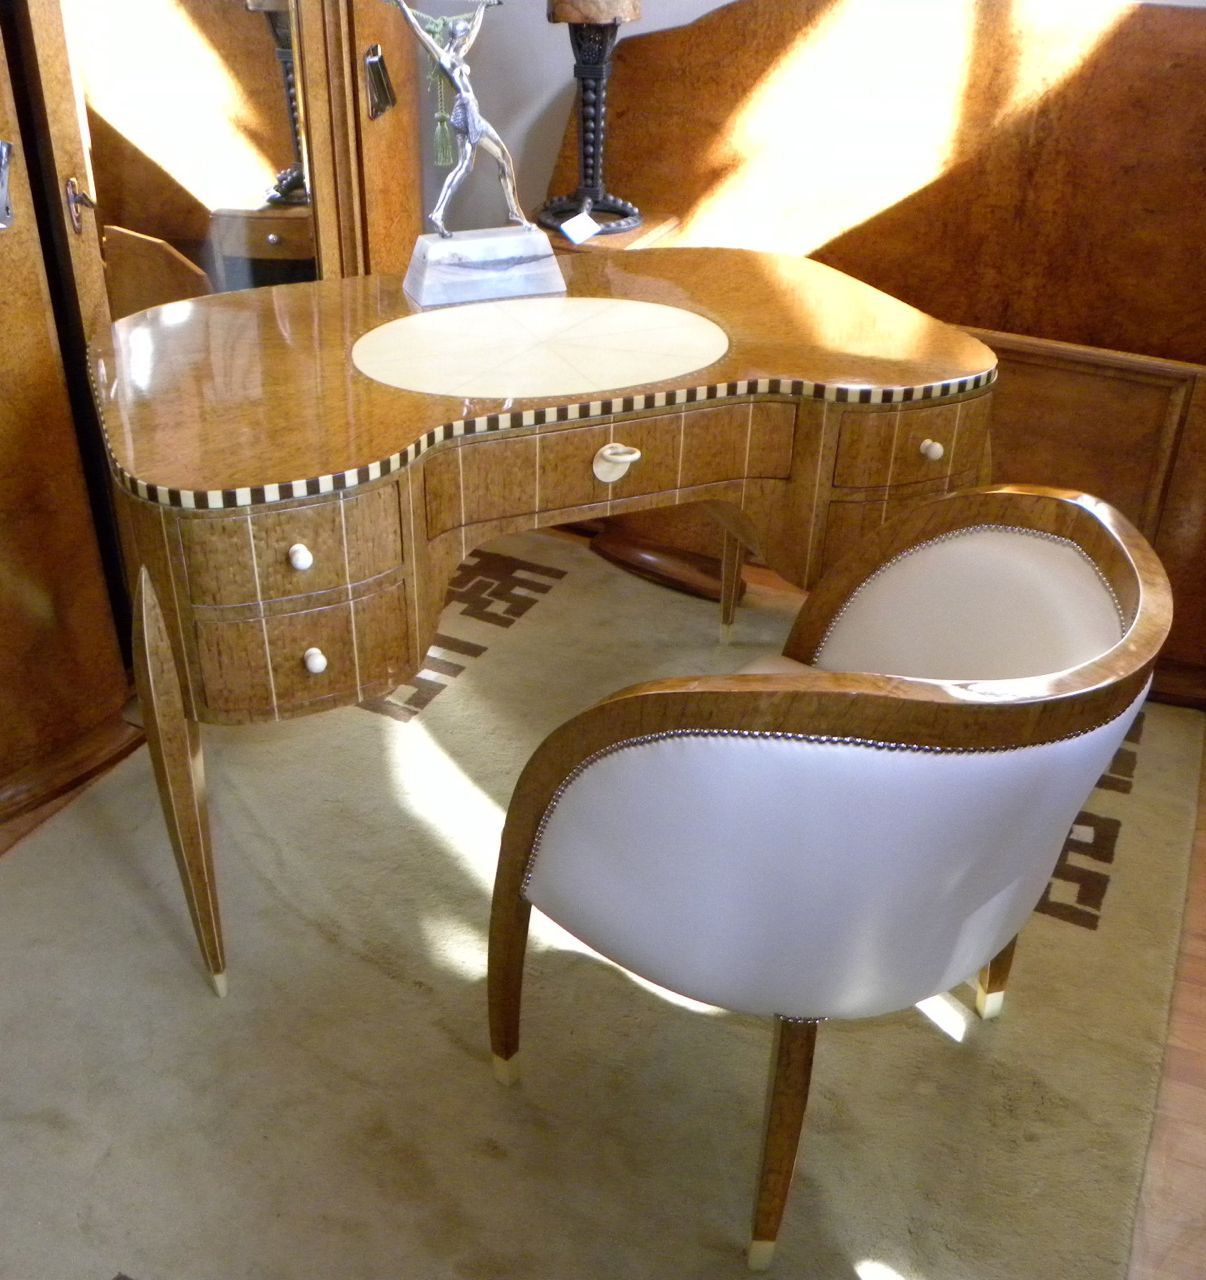 Art deco desk chairs - Art Deco Desk And Chair In Style Of Ruhlmann Desks Cabinets Art Deco Collection